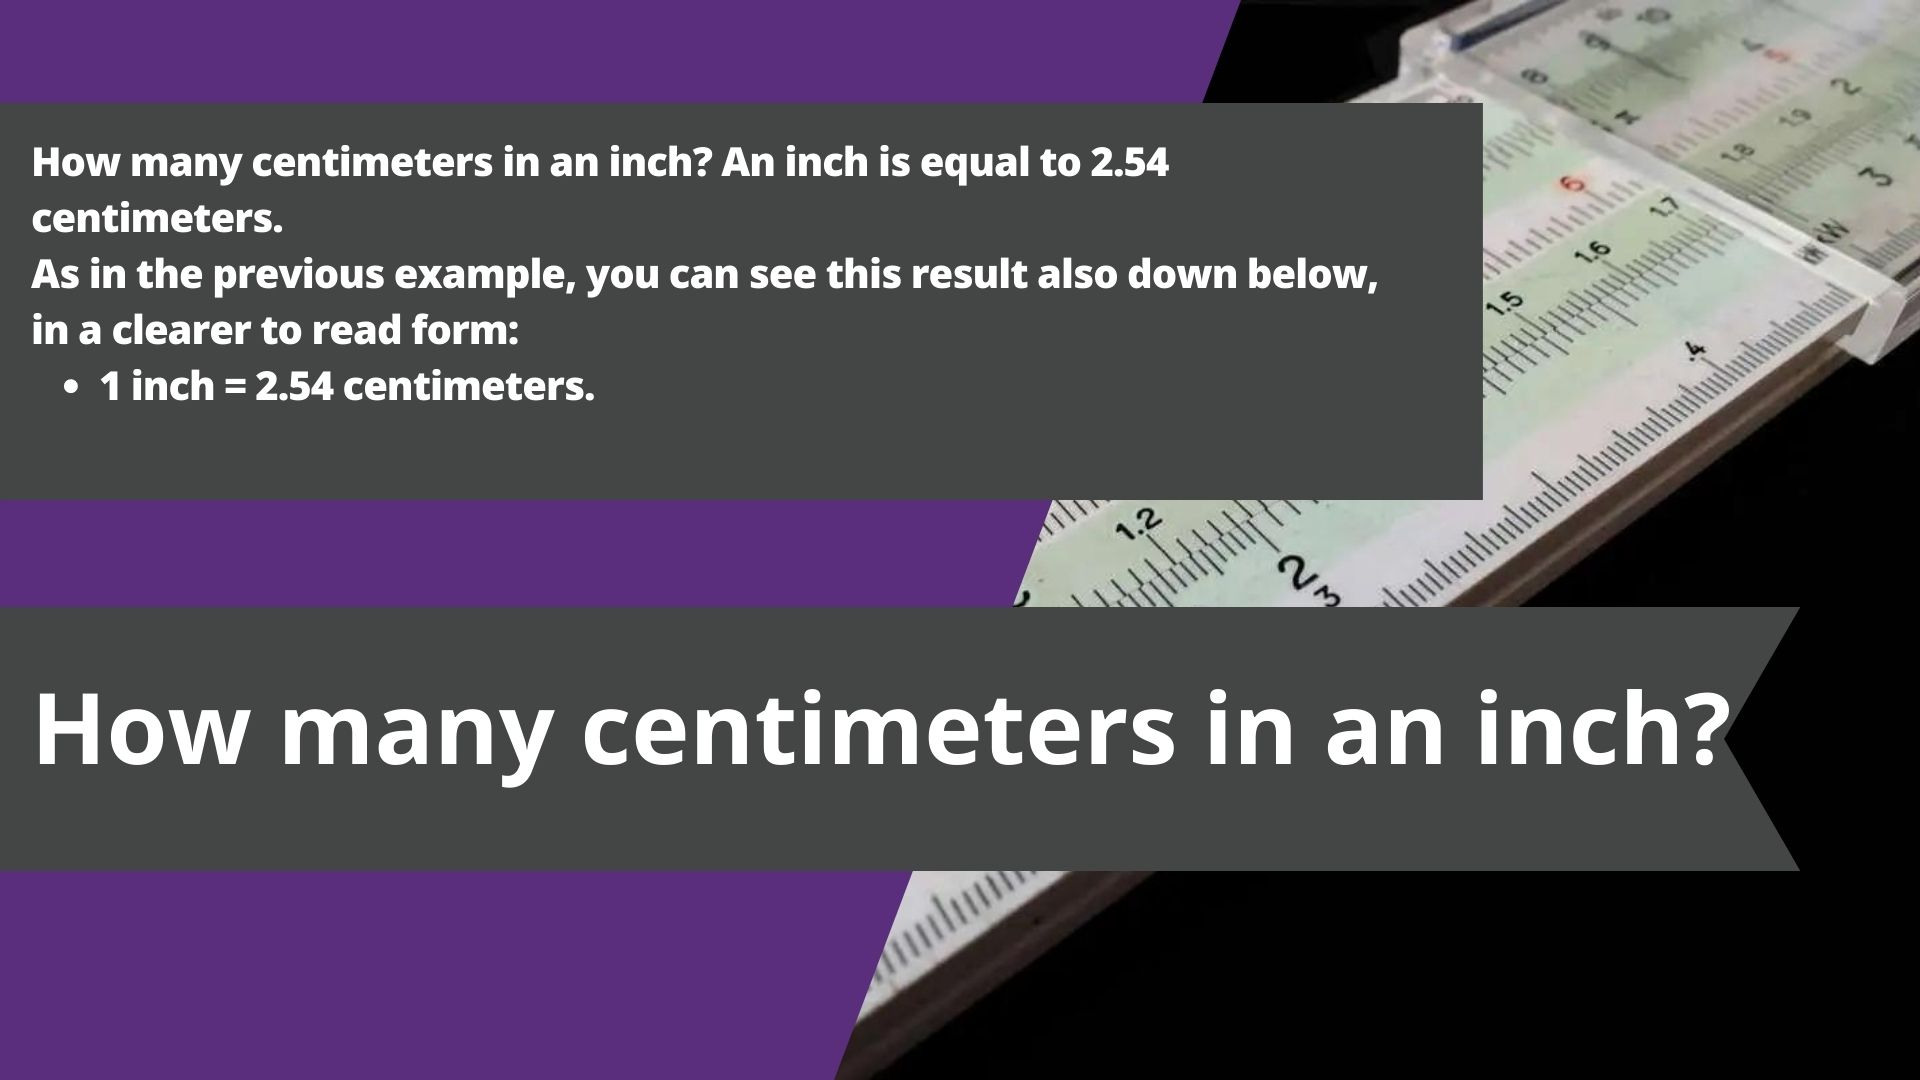 How many centimeters in an inch?